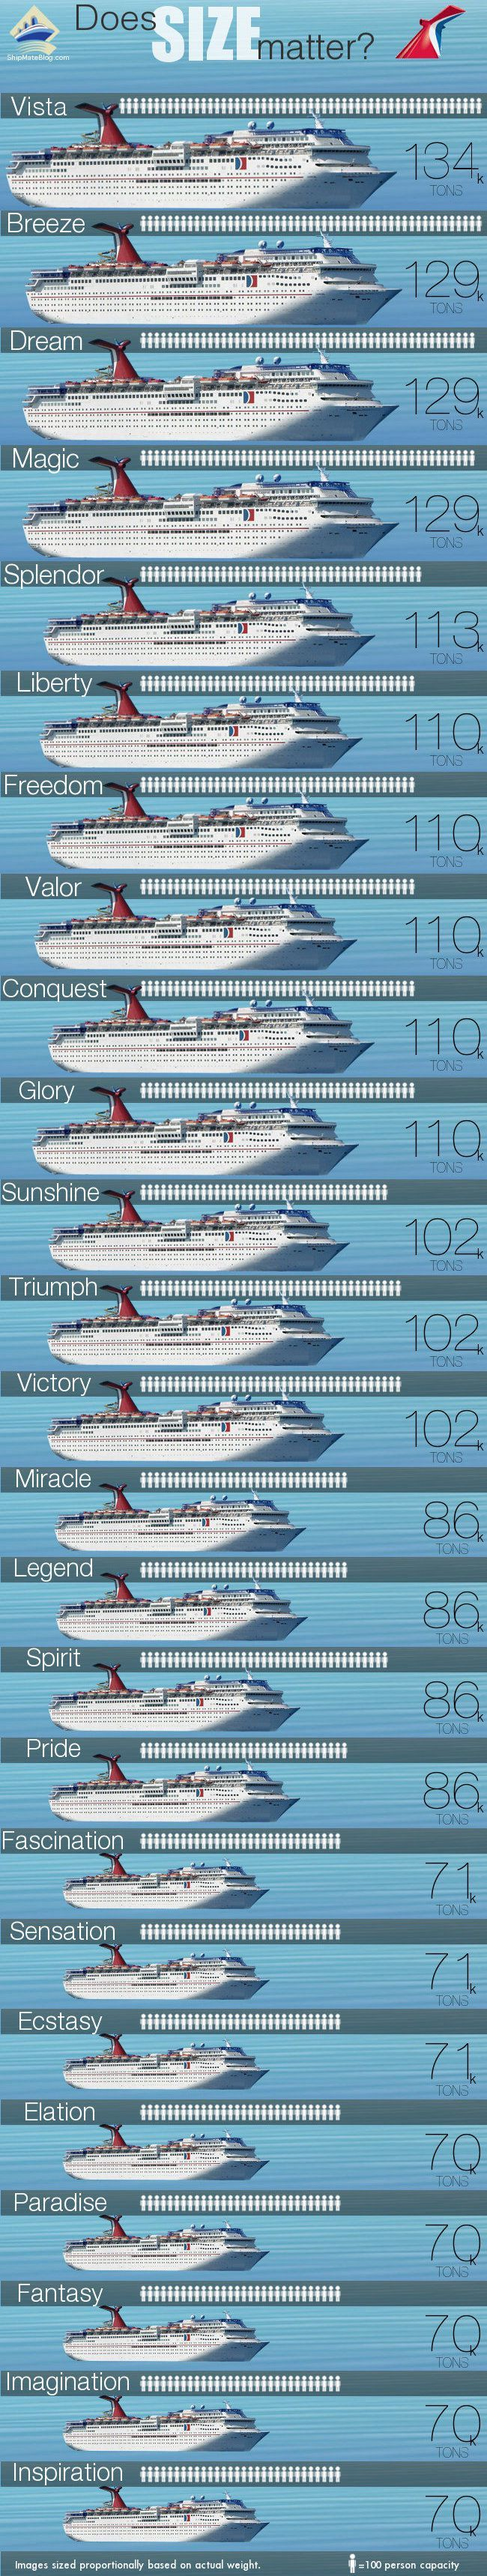 Carnival Ships By Size